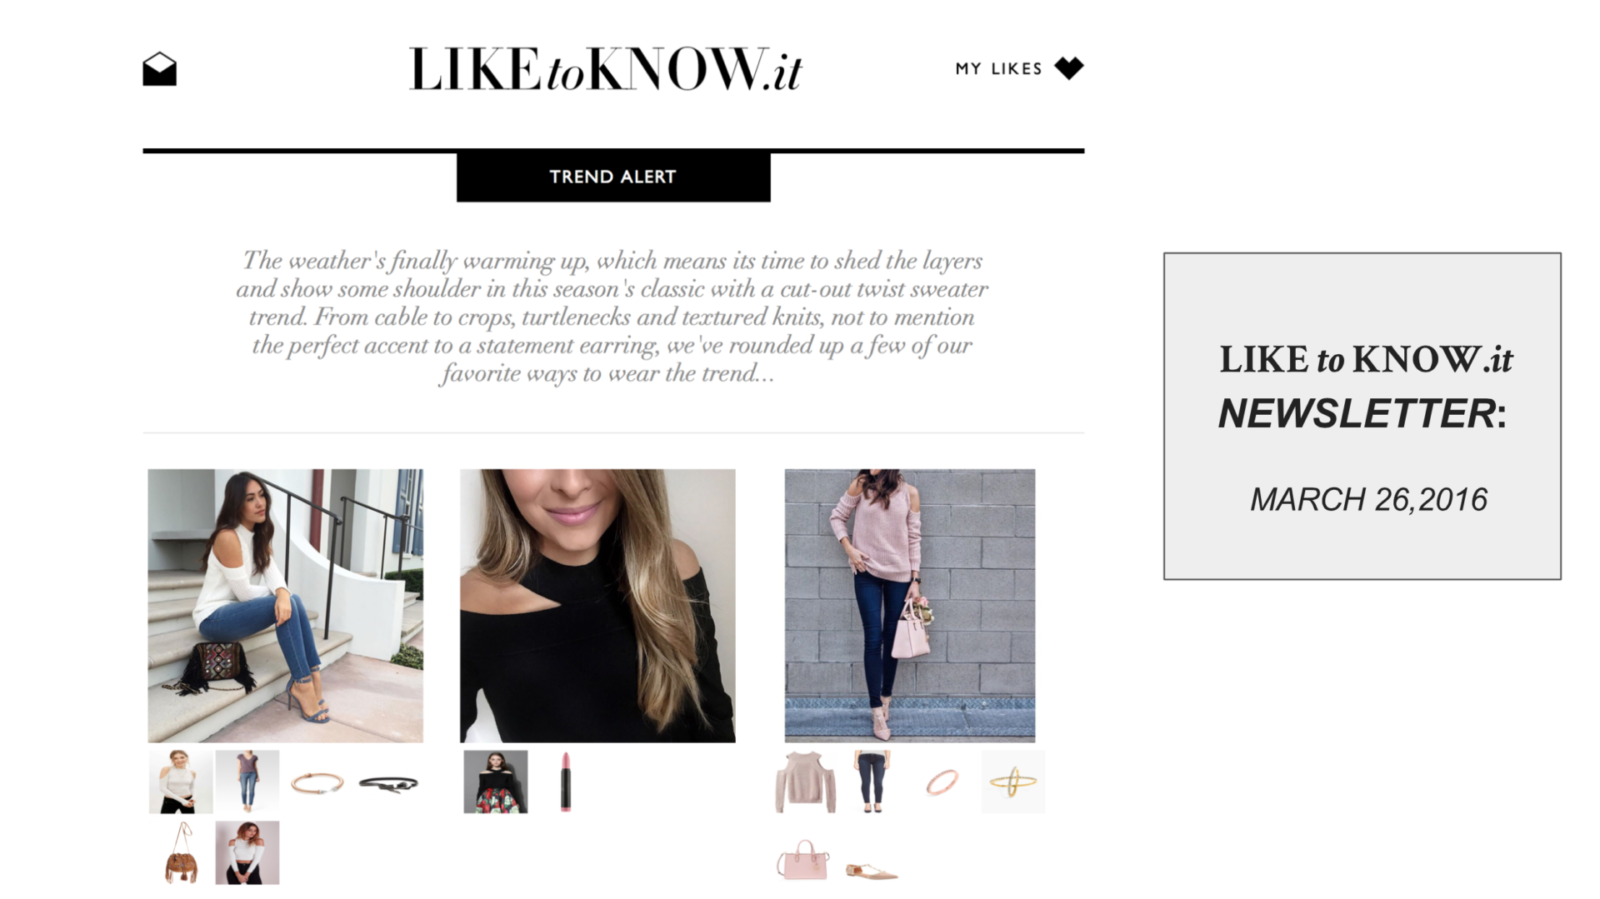 LiketoKnowit_Newsletter